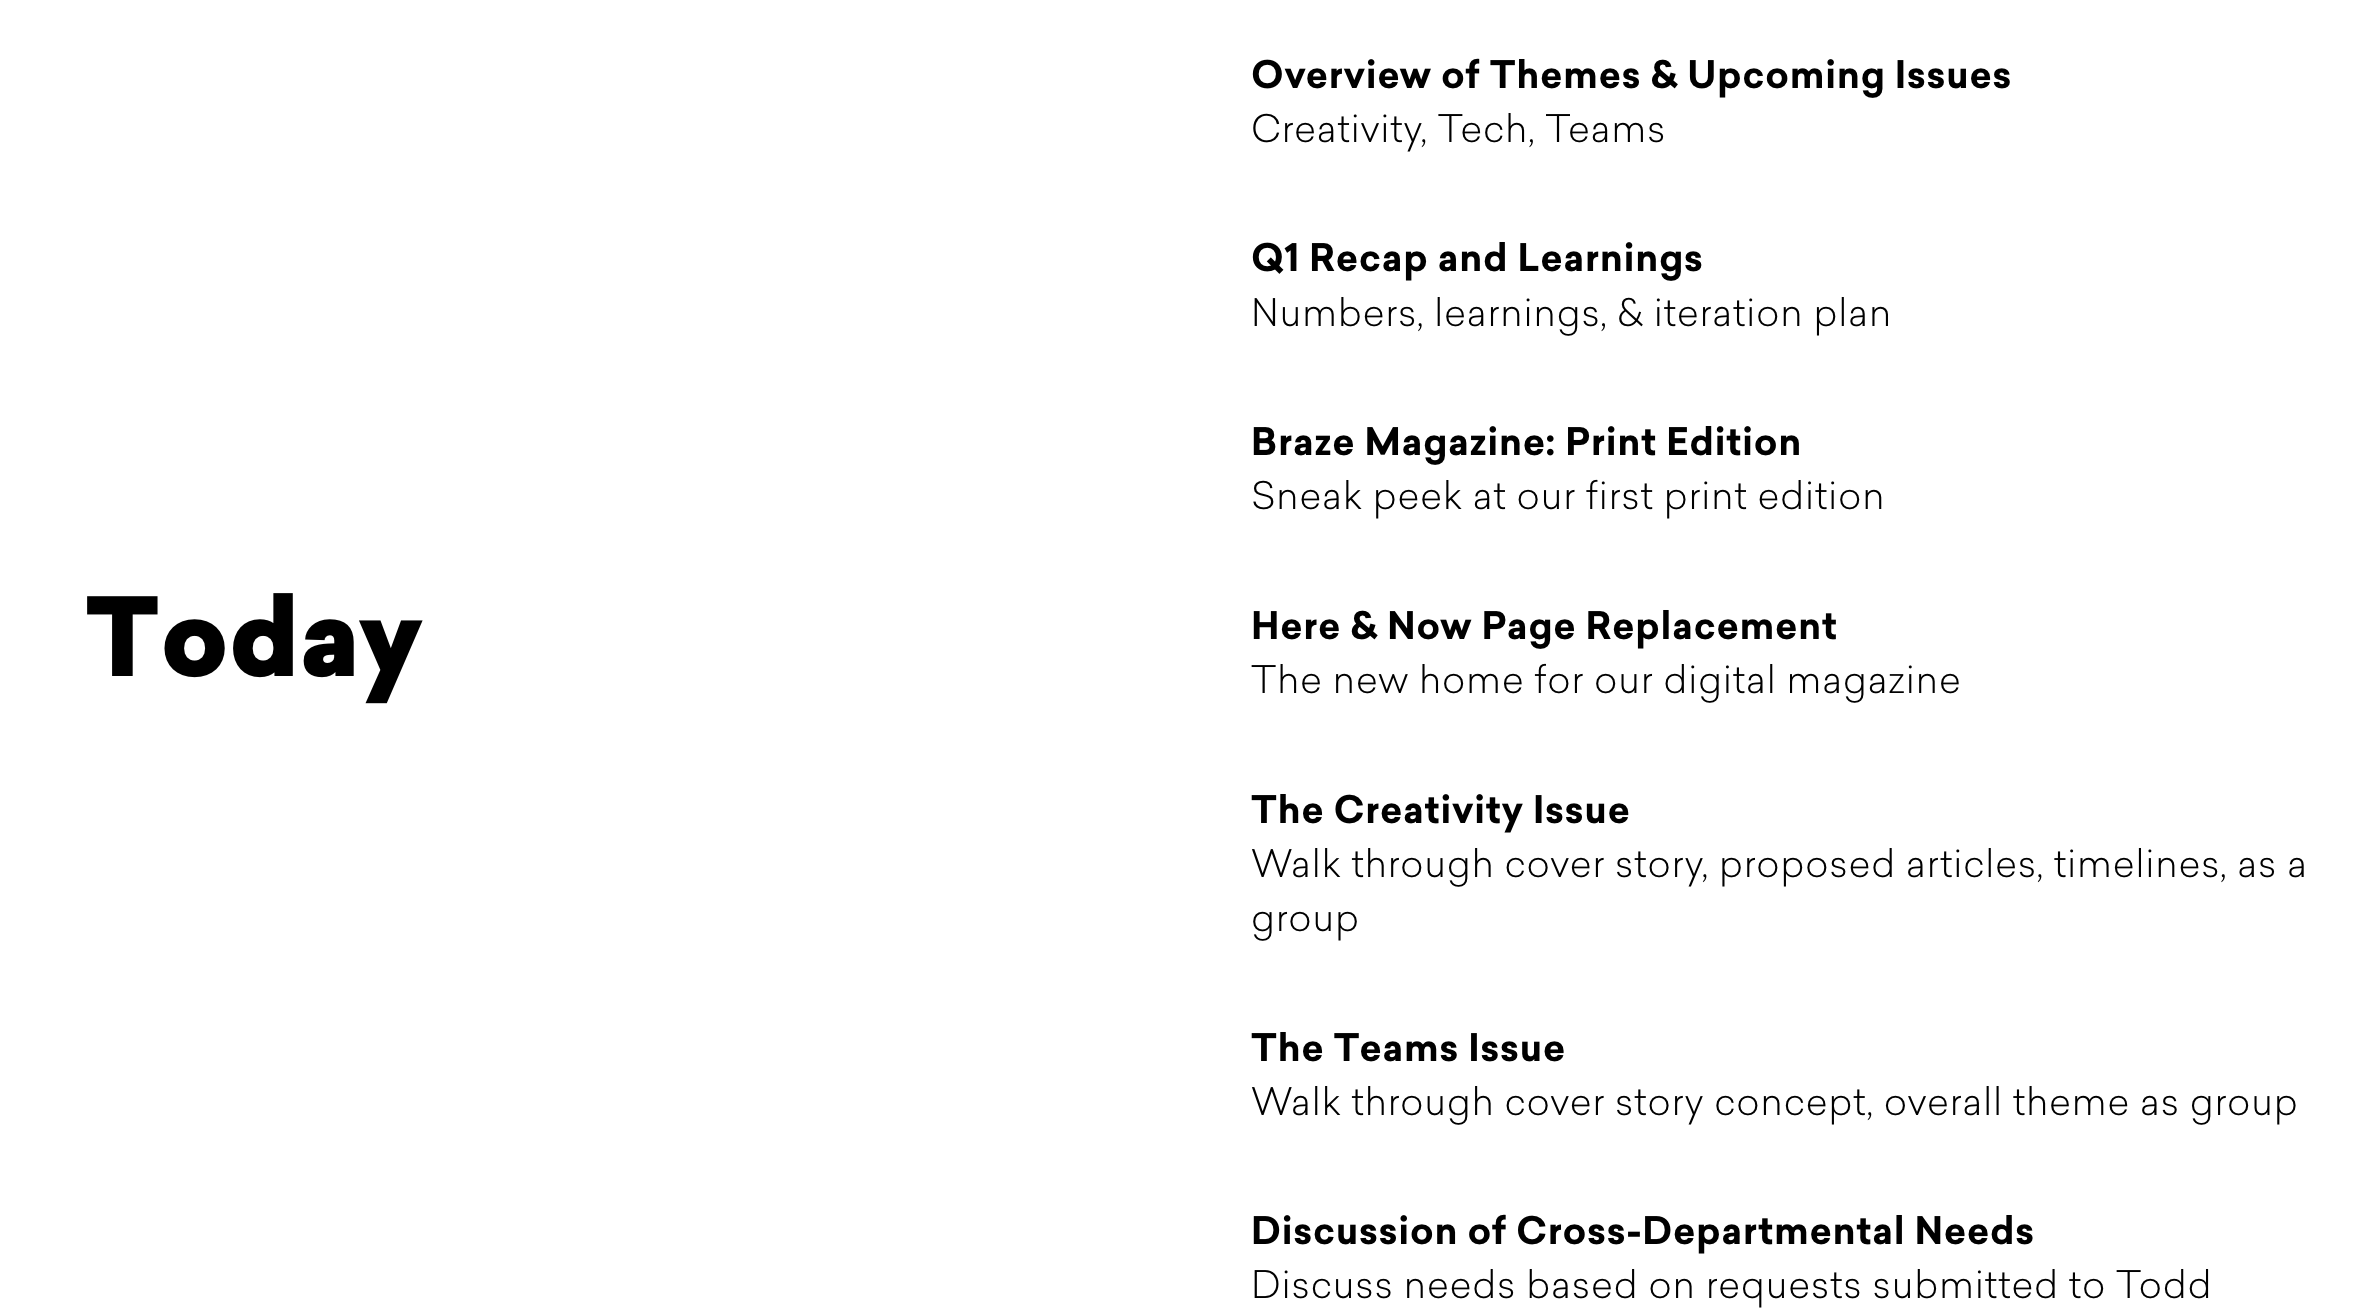 An Oral Historal of Braze Magazines and Perspectives | Braze